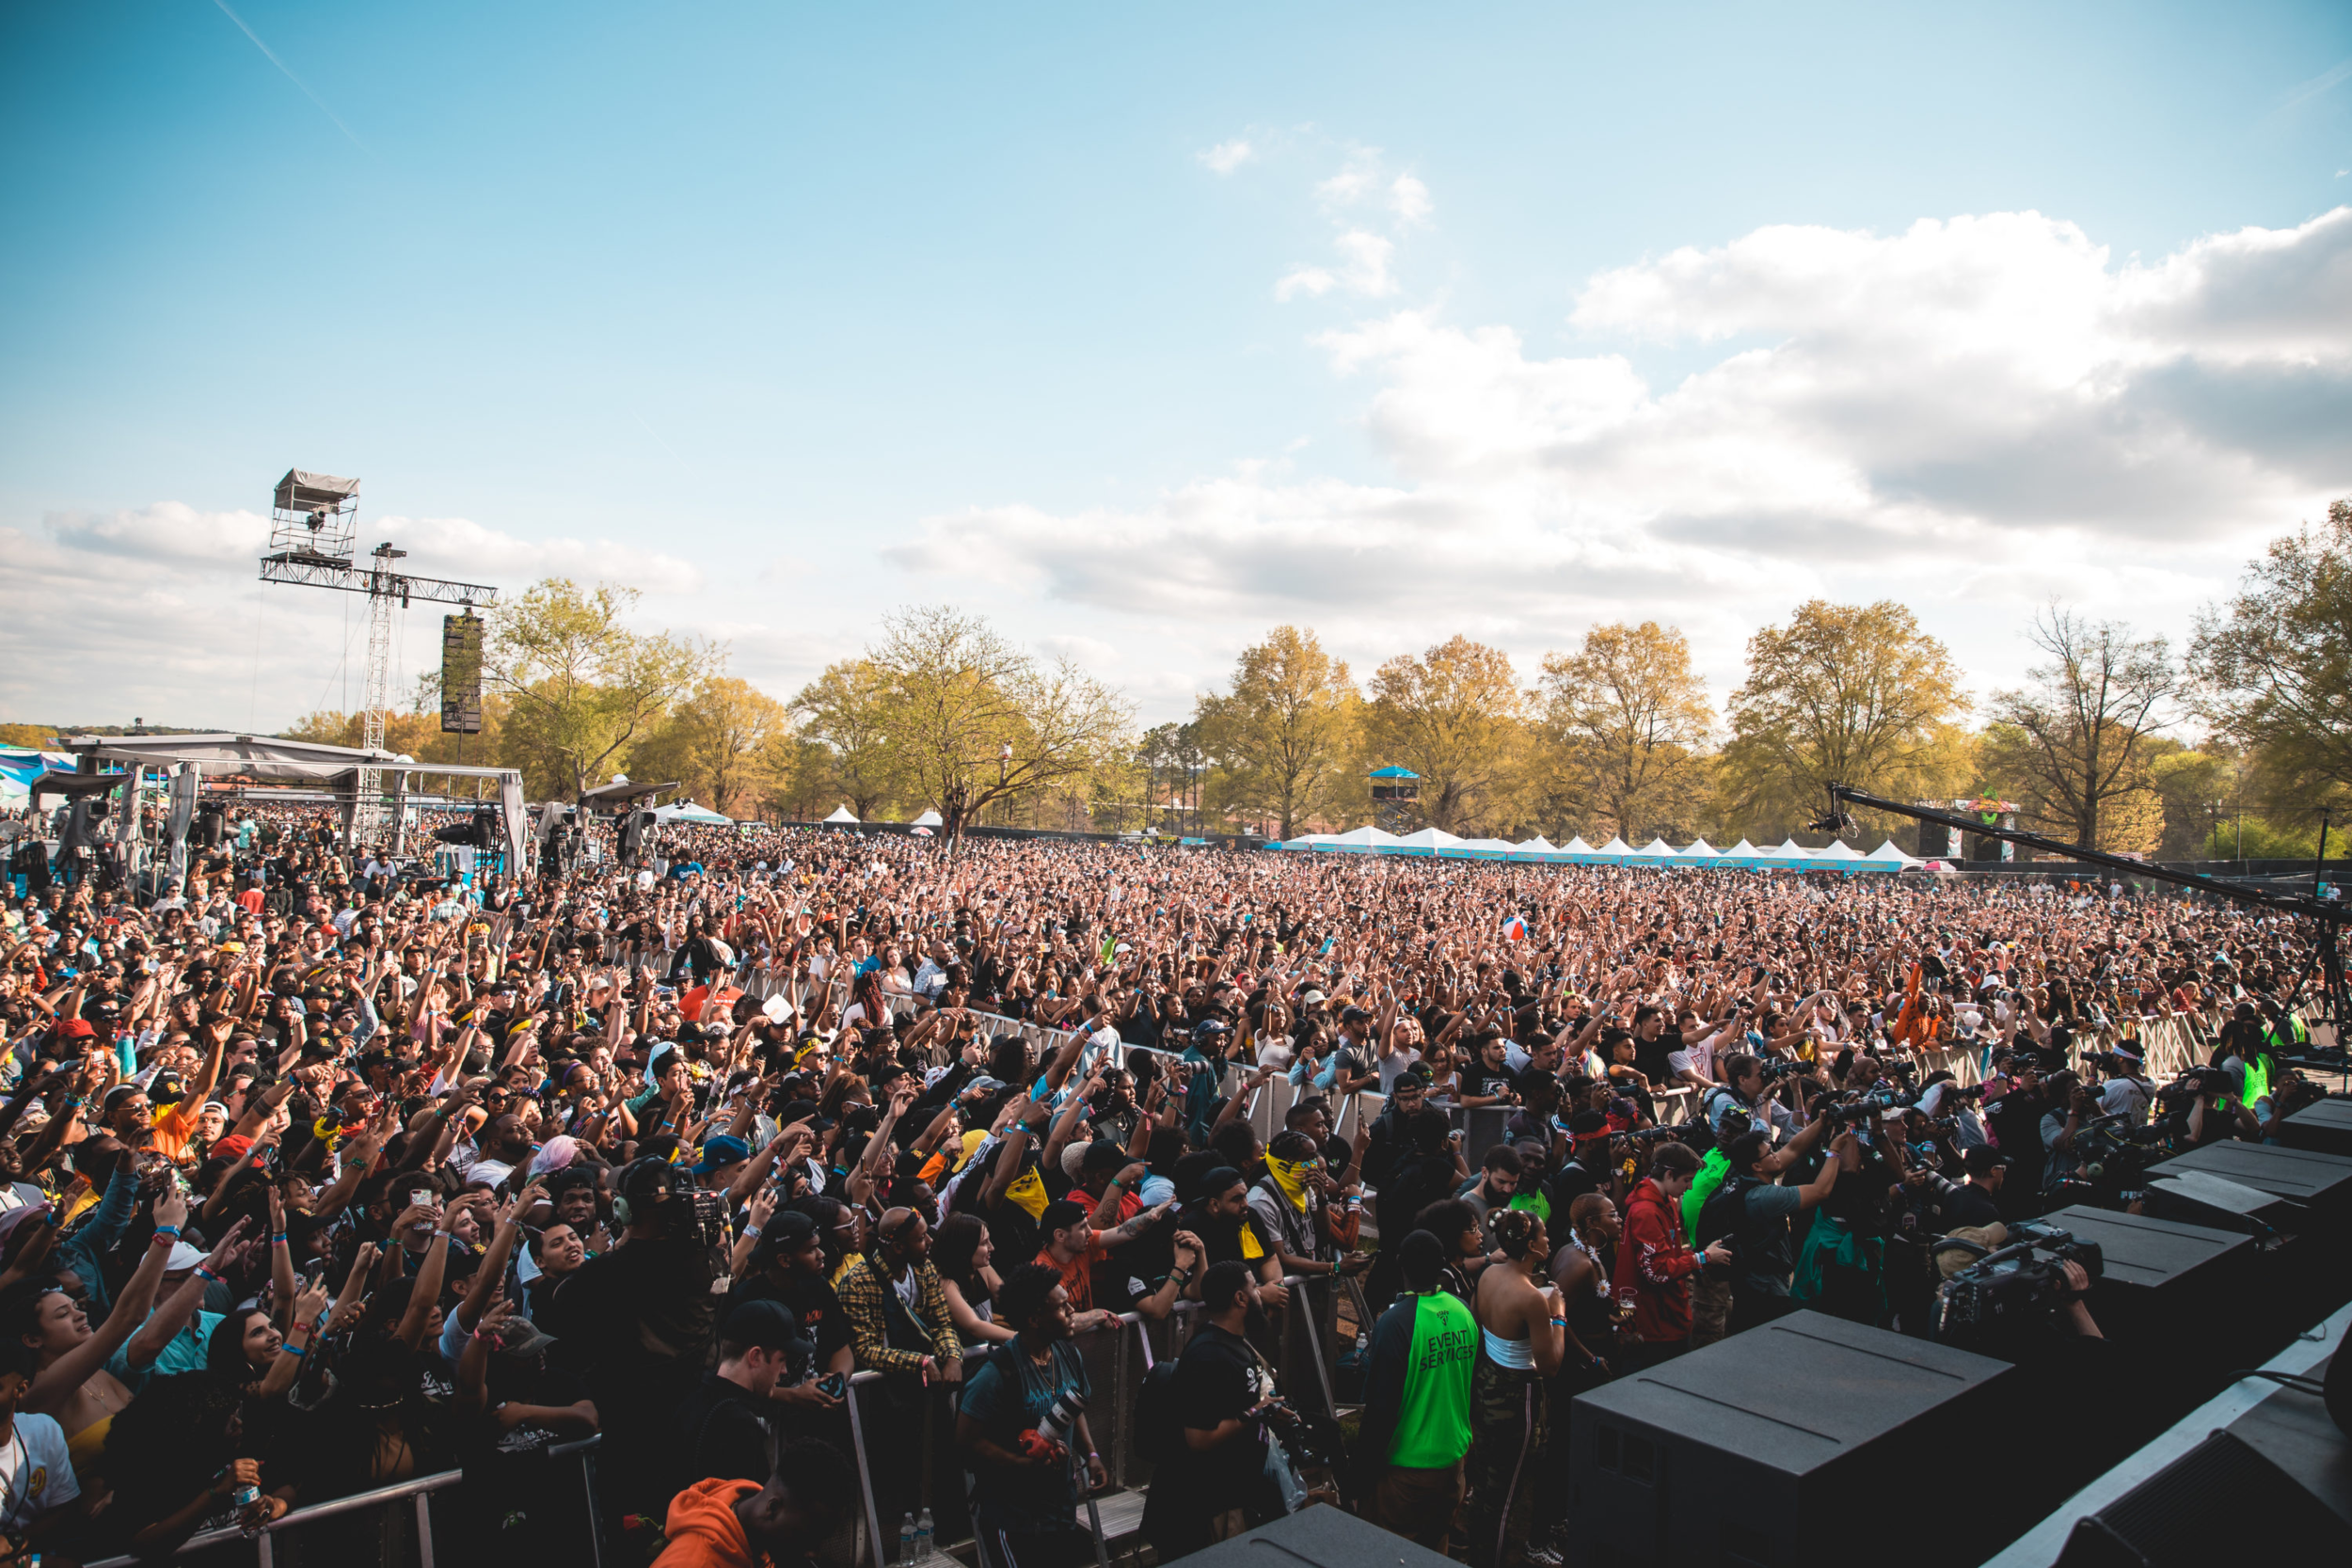 DREAMVILLE FESTIVAL  The sold out inaugural Dreamville Festival, founded and headlined by J Cole, brought approx. 40,000 fan to the historic Dorothy Dix Park in Raleigh for a day of music, culture, vendors, and art.